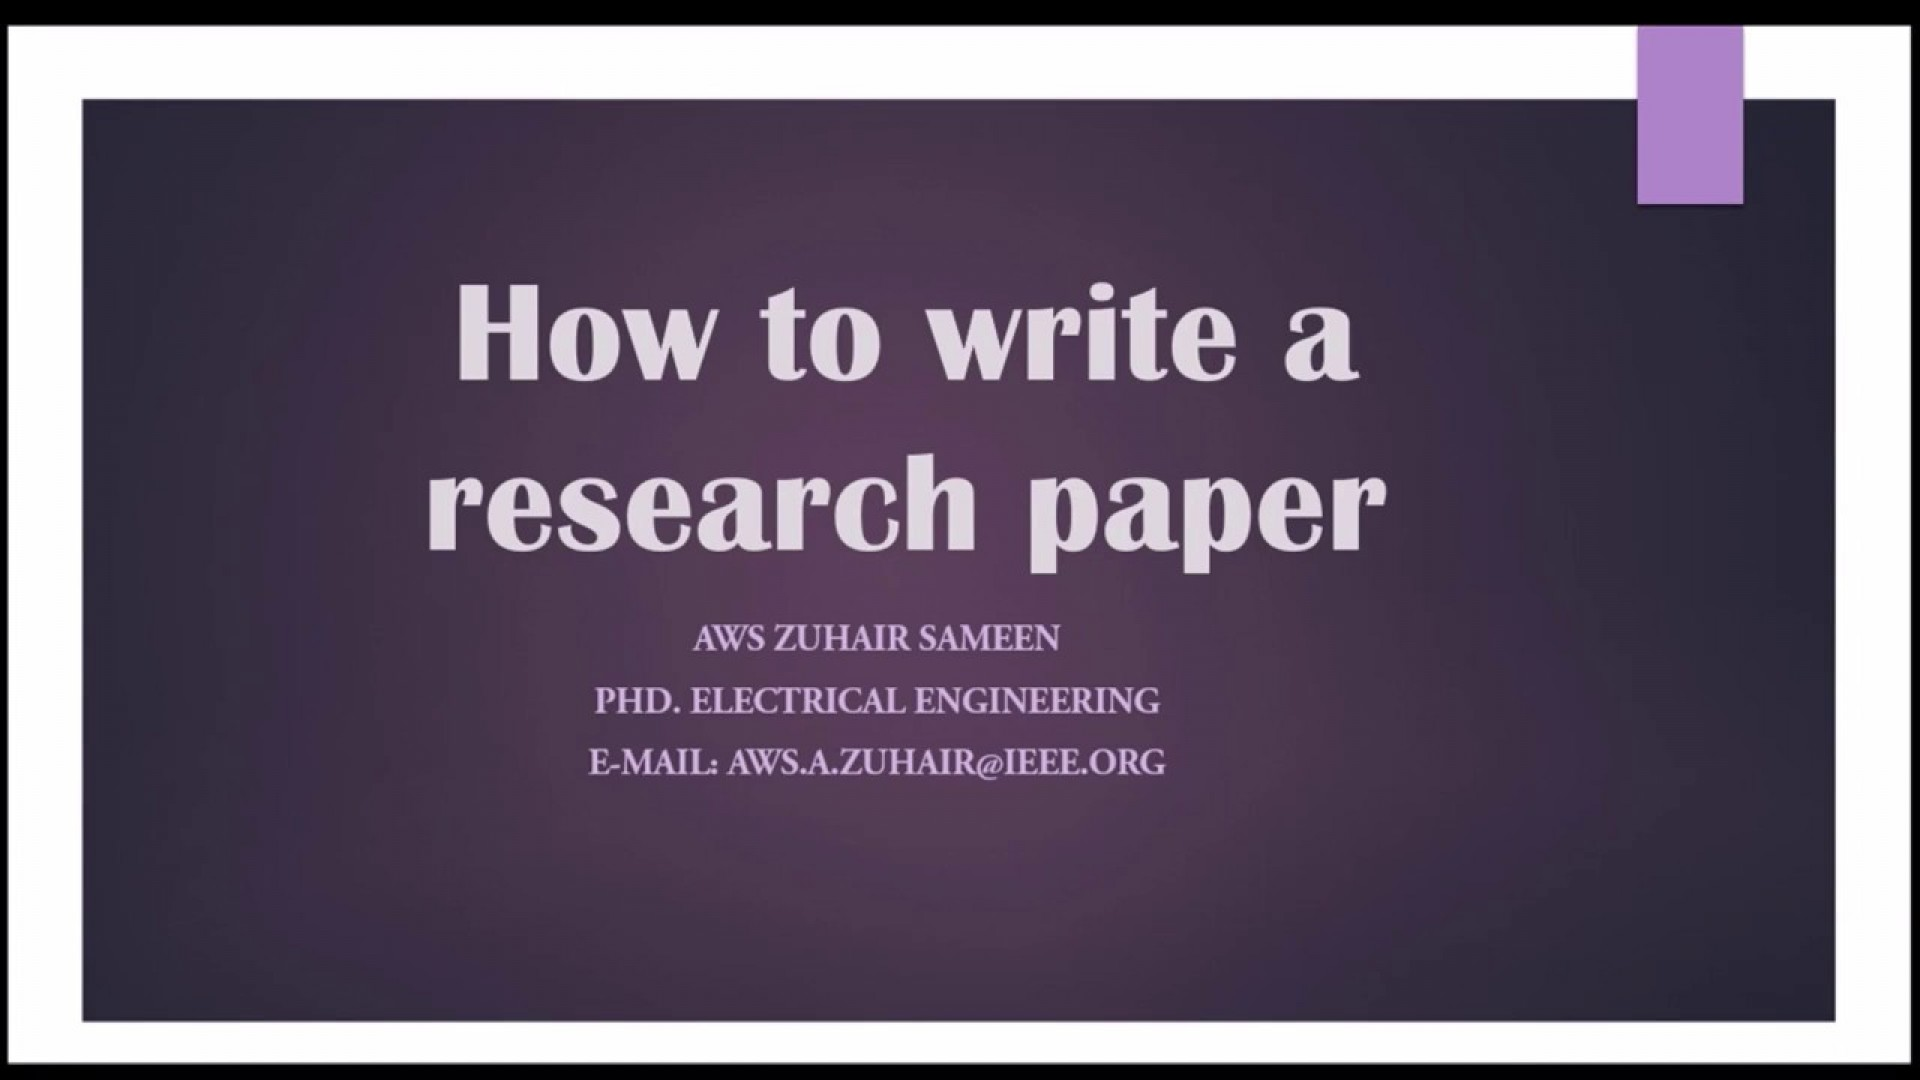 016 Research Paper How To Write Conclusion For Fearsome A Example Apa 1920